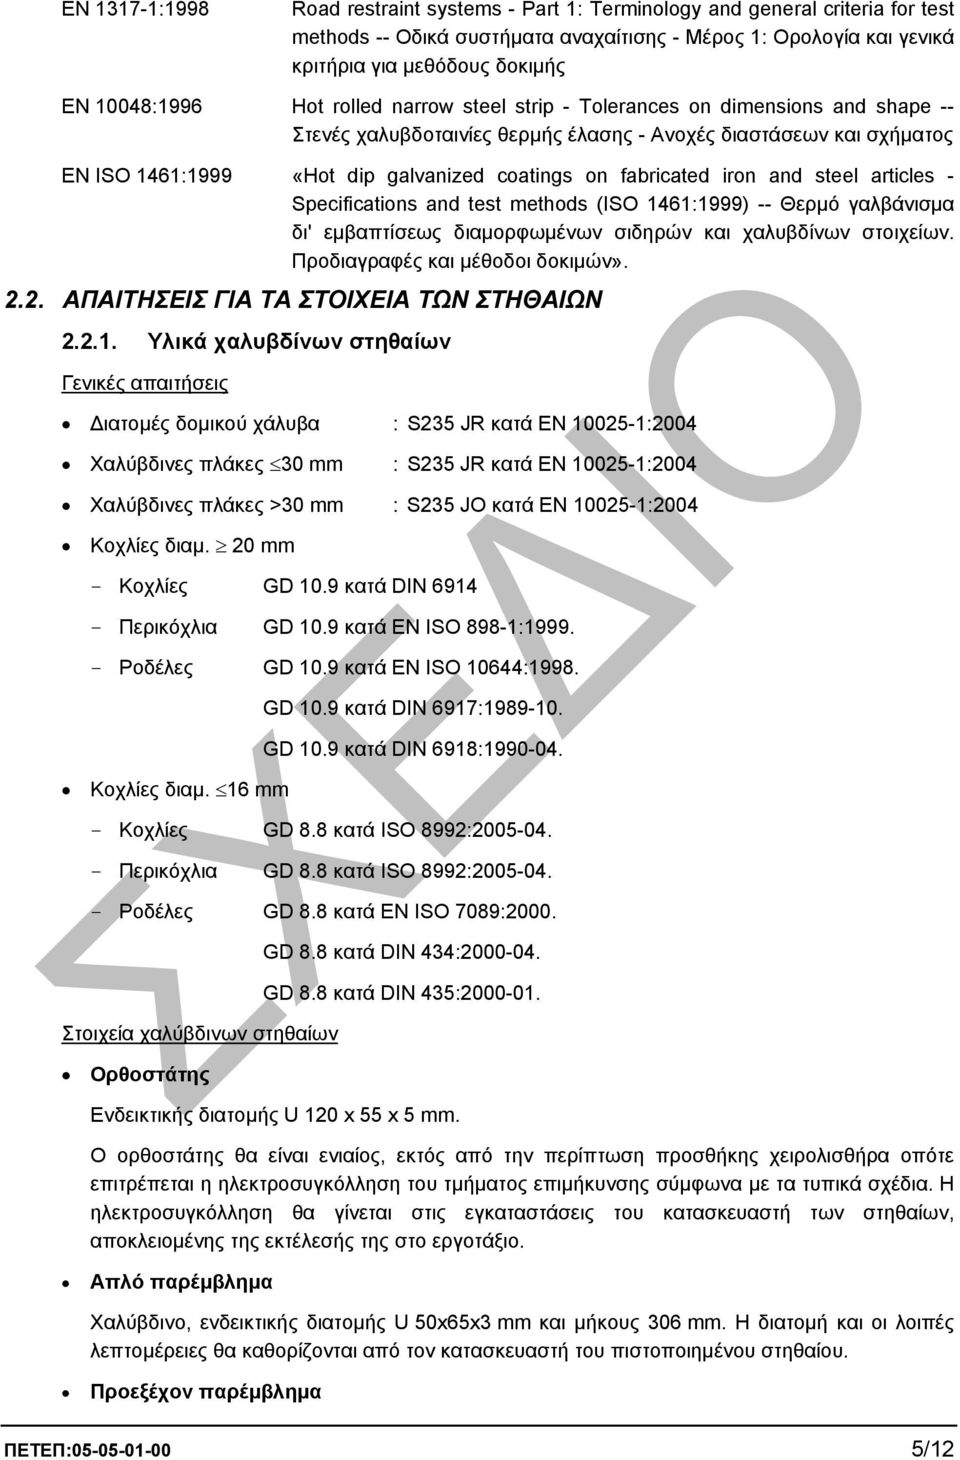 fabricated iron and steel articles - Specifications and test methods (ISO 1461:1999) -- Θερµό γαλβάνισµα δι' εµβαπτίσεως διαµορφωµένων σιδηρών και χαλυβδίνων στοιχείων.